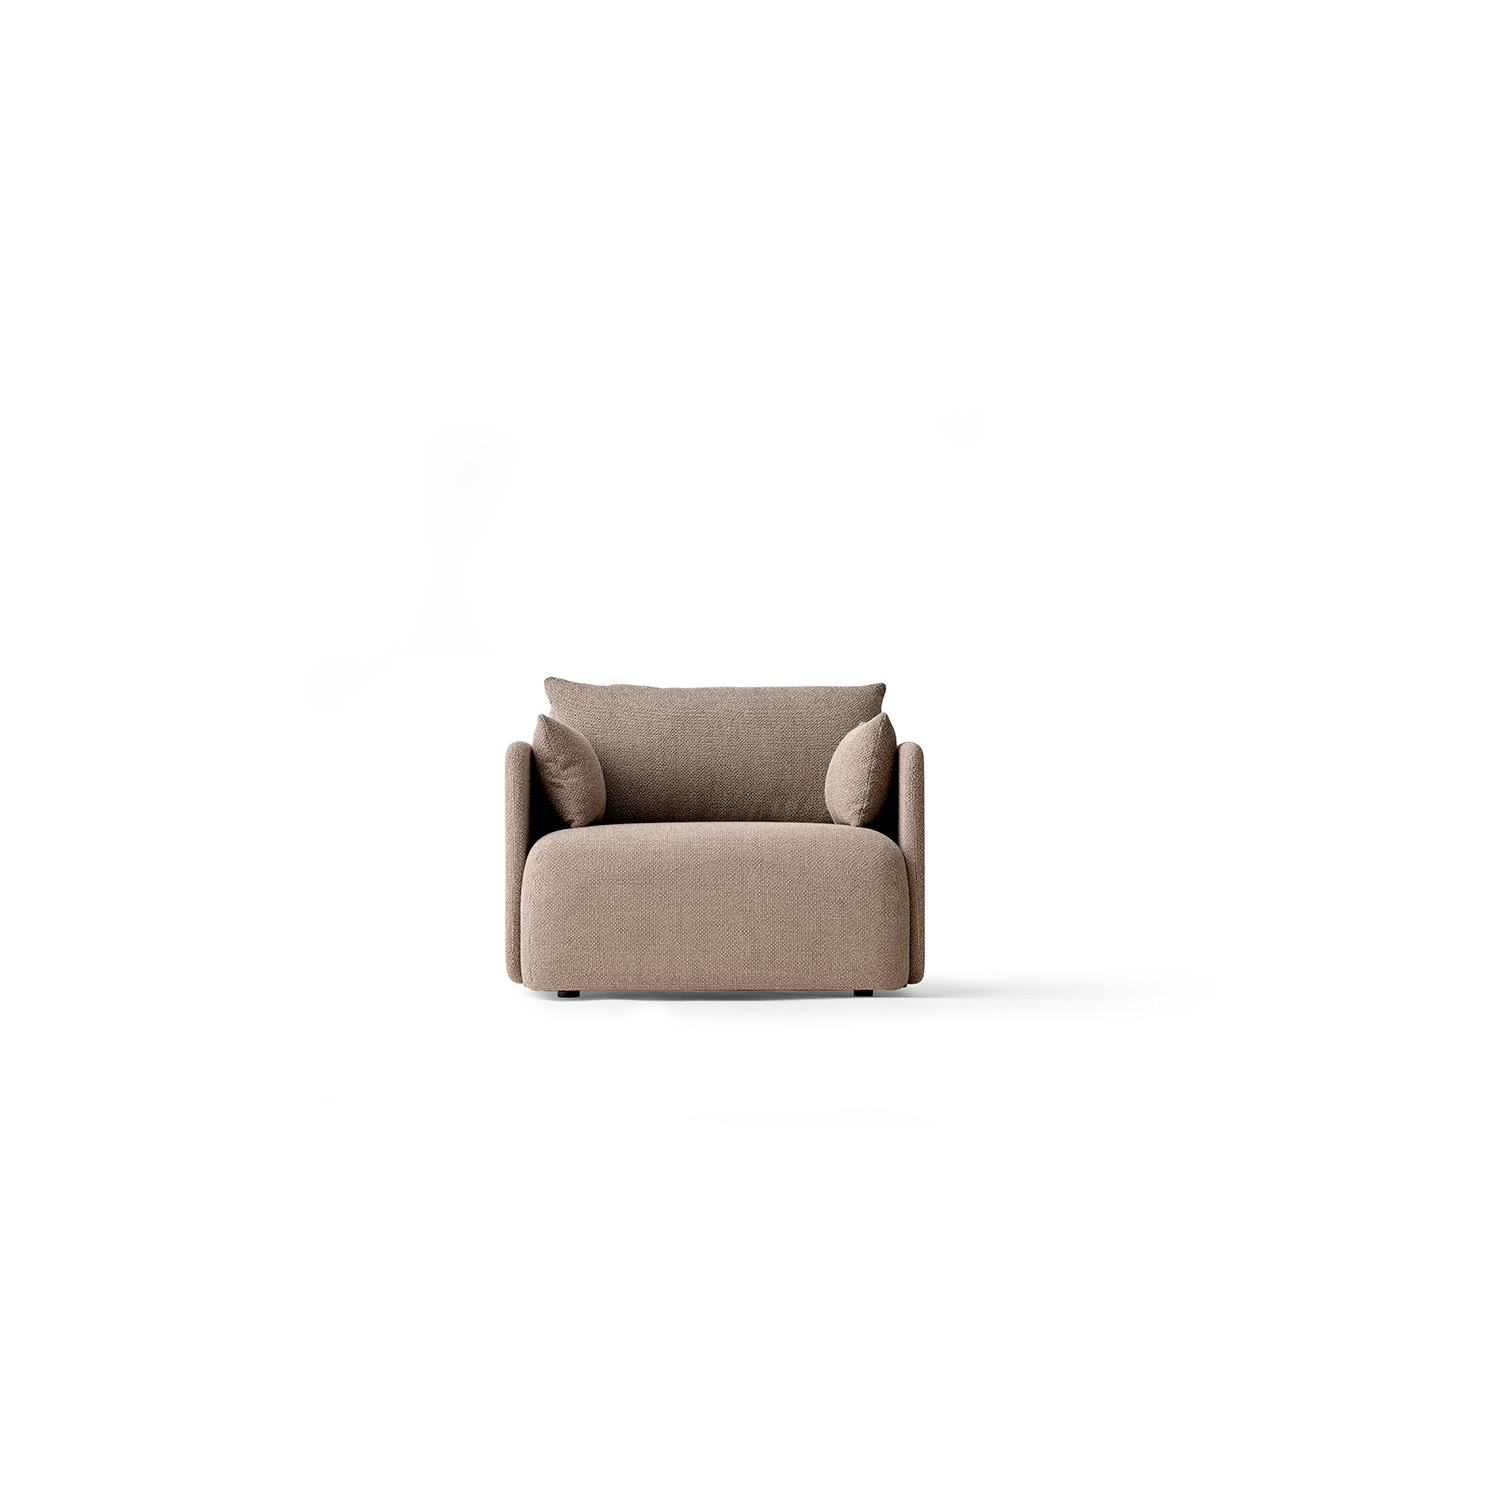 Offset Sofa 1 Seater, Maple 222